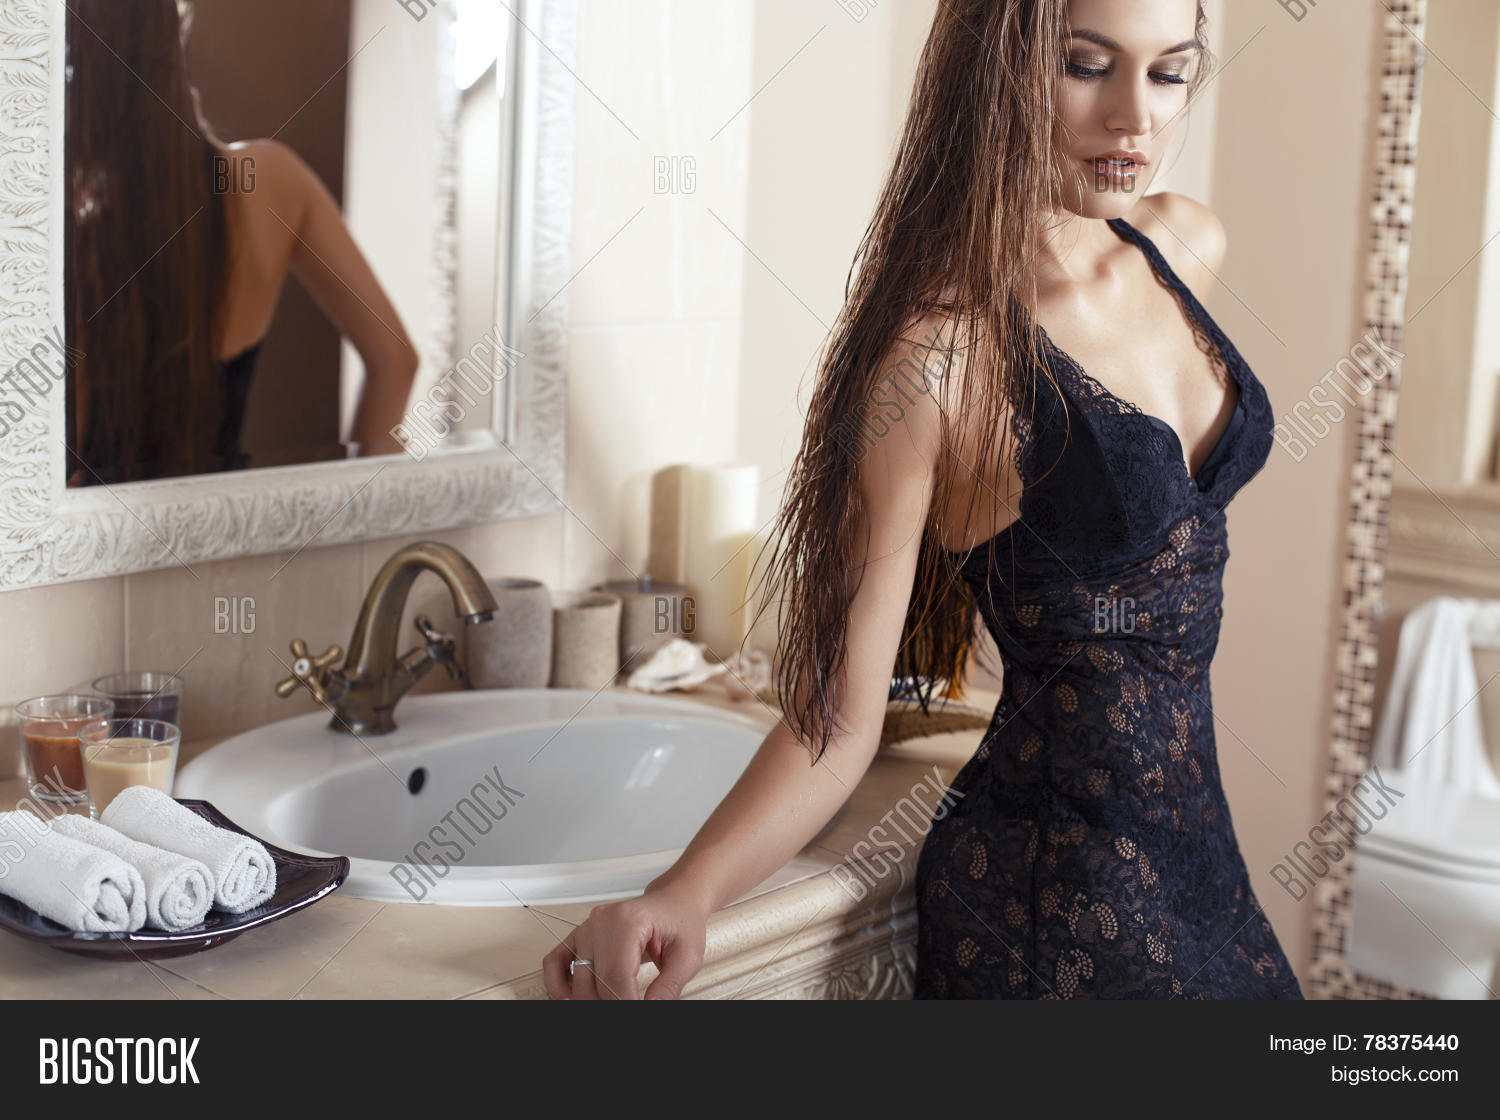 3964f89ed27 sexy woman with long dark hair wearing lace lingerie dress posing in luxury  bathroom